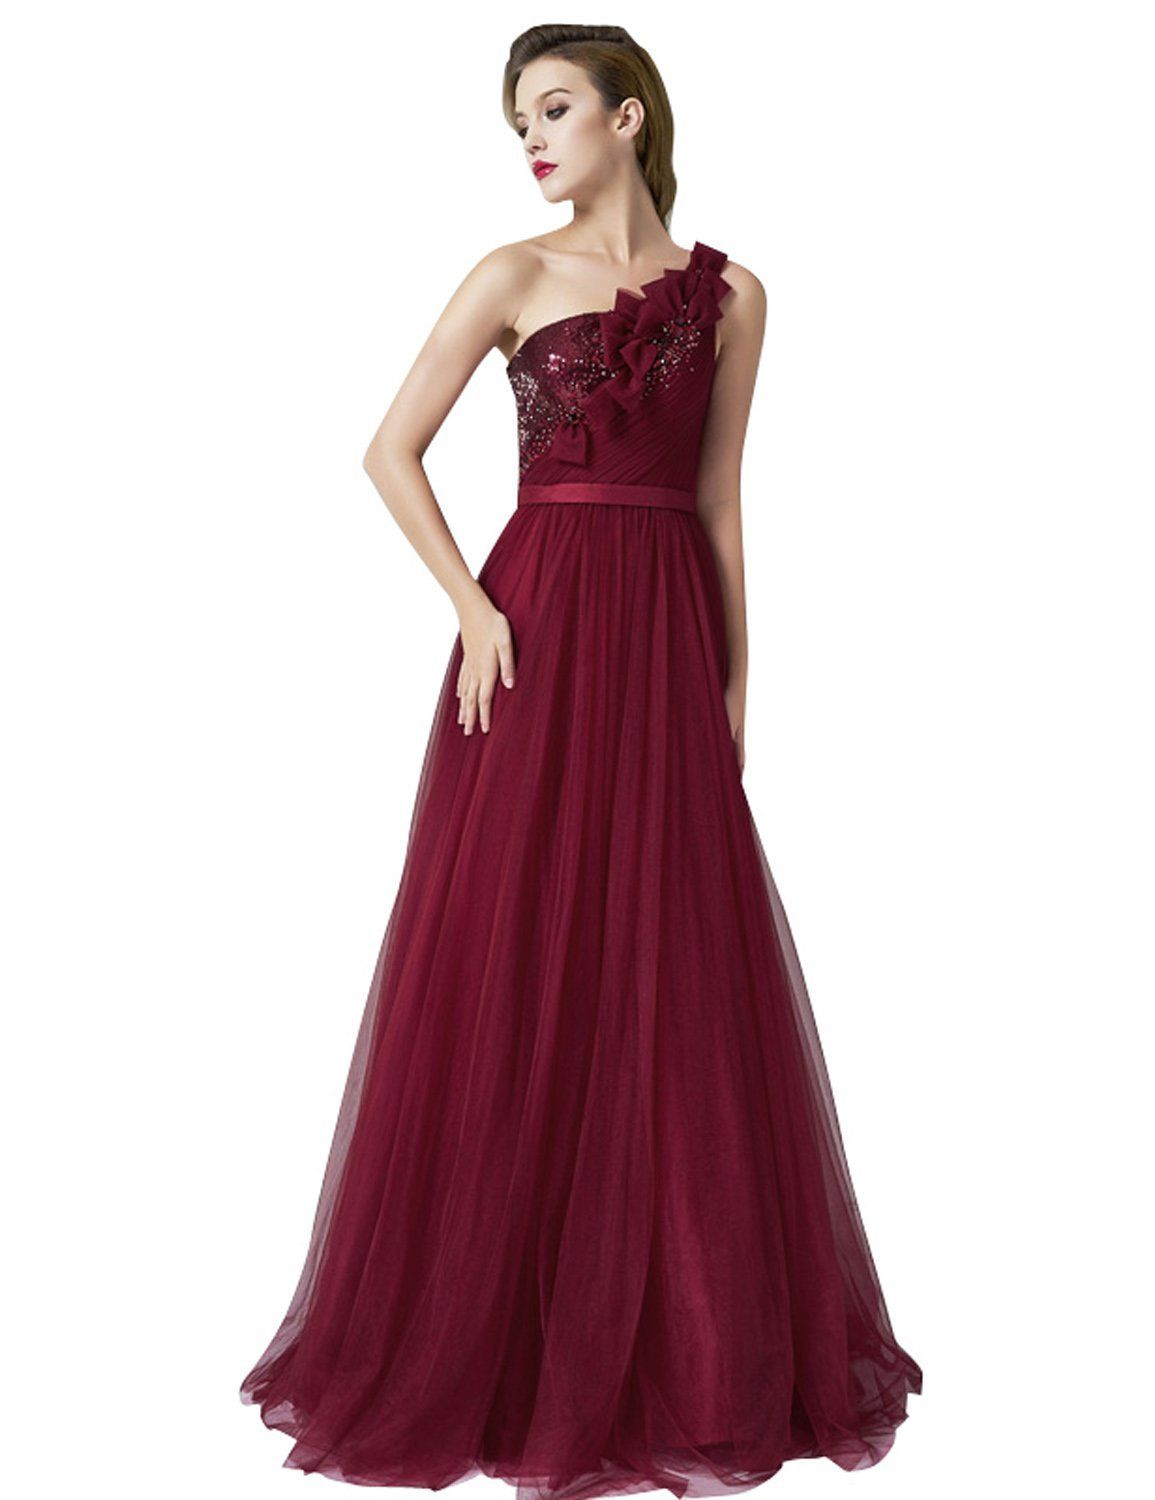 Anne womenus one shoulder beaded prom dress burgundy long evening